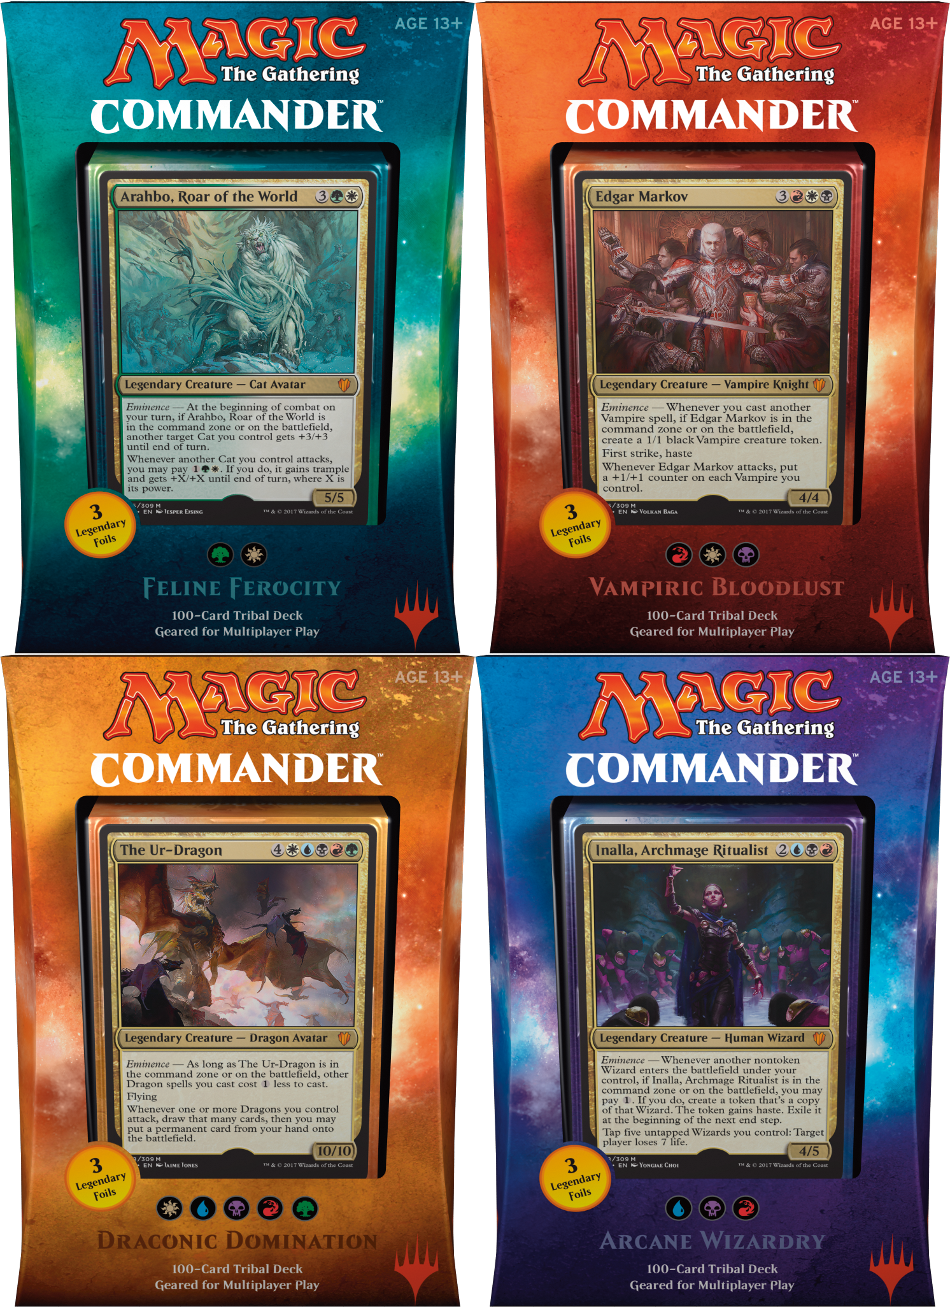 2017 MTG Commander Set of 4 Decks